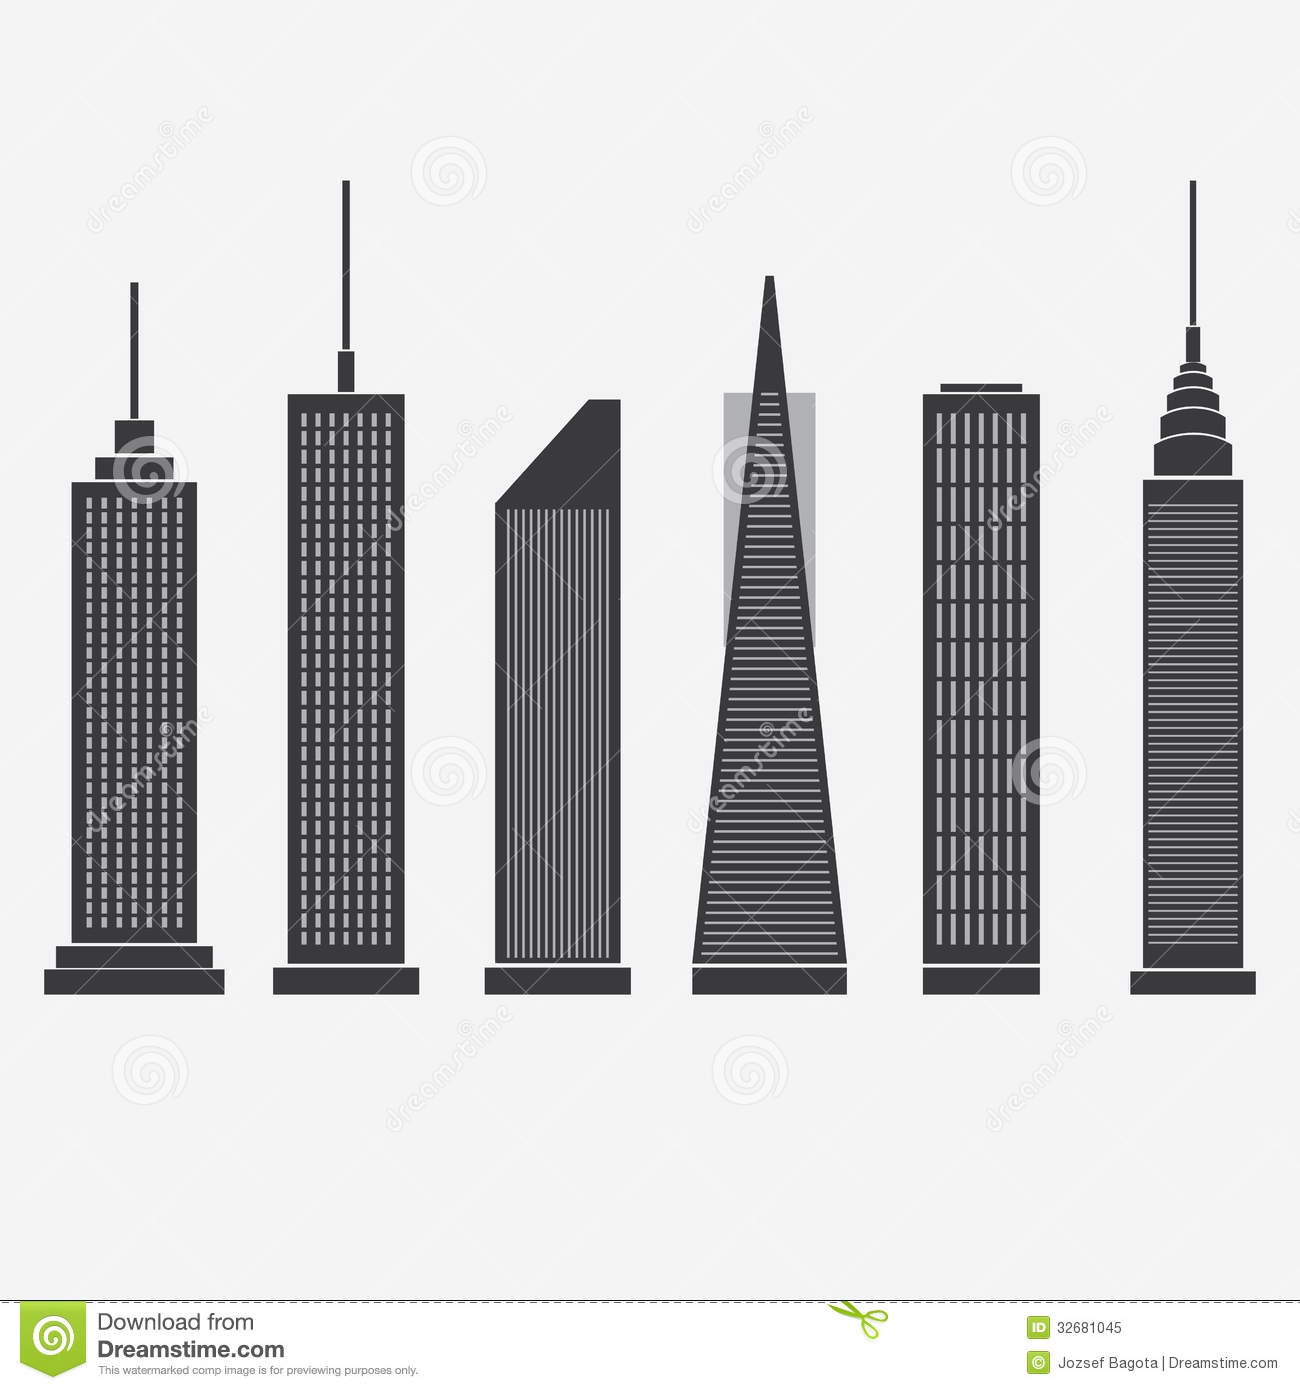 Skyscraper Clip Art Black and White